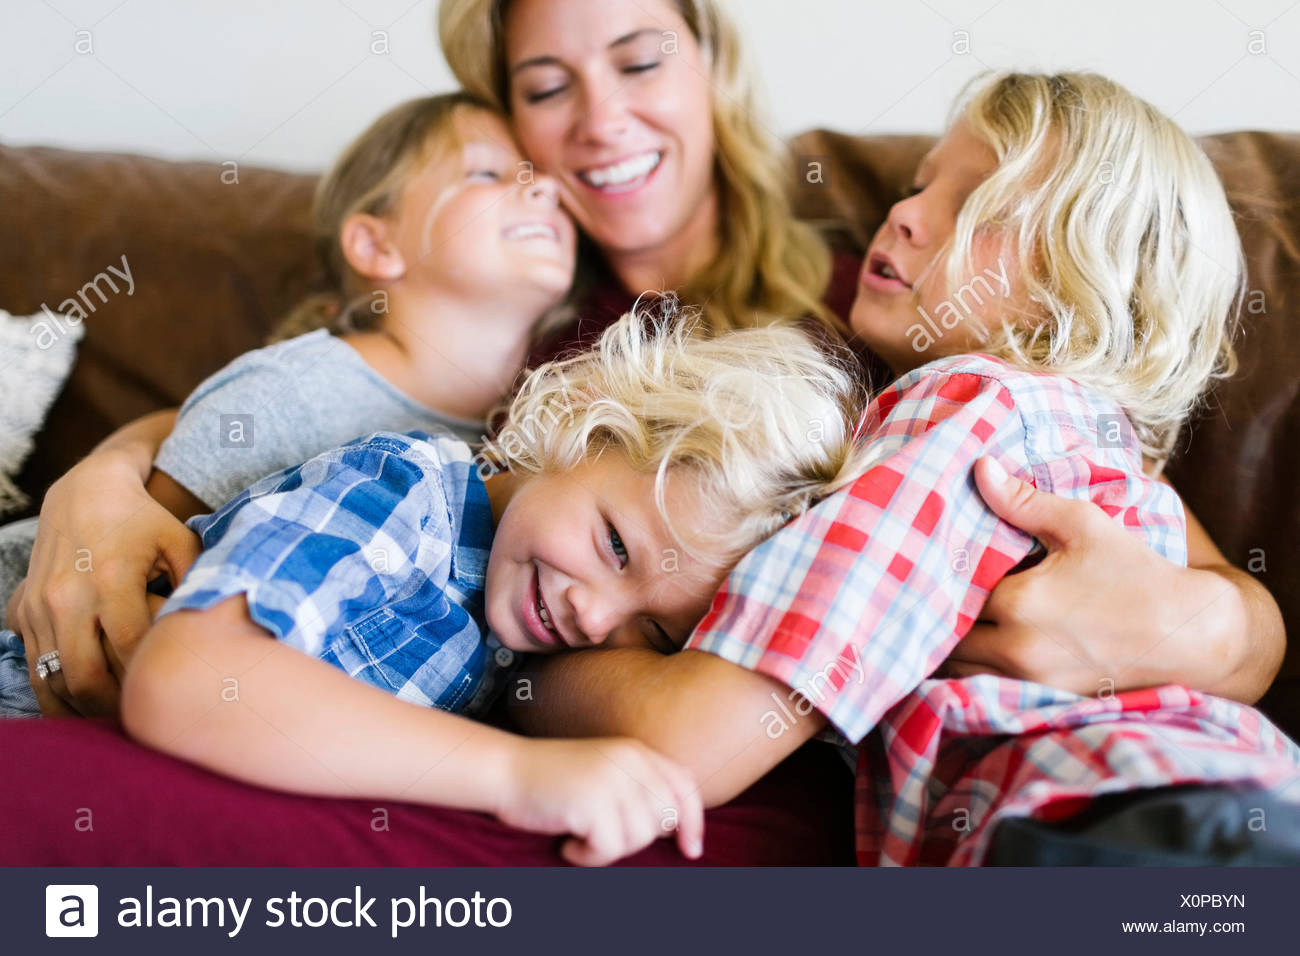 Mother and children (4-5, 6-7, 8-9) embracing in living room - Stock Image